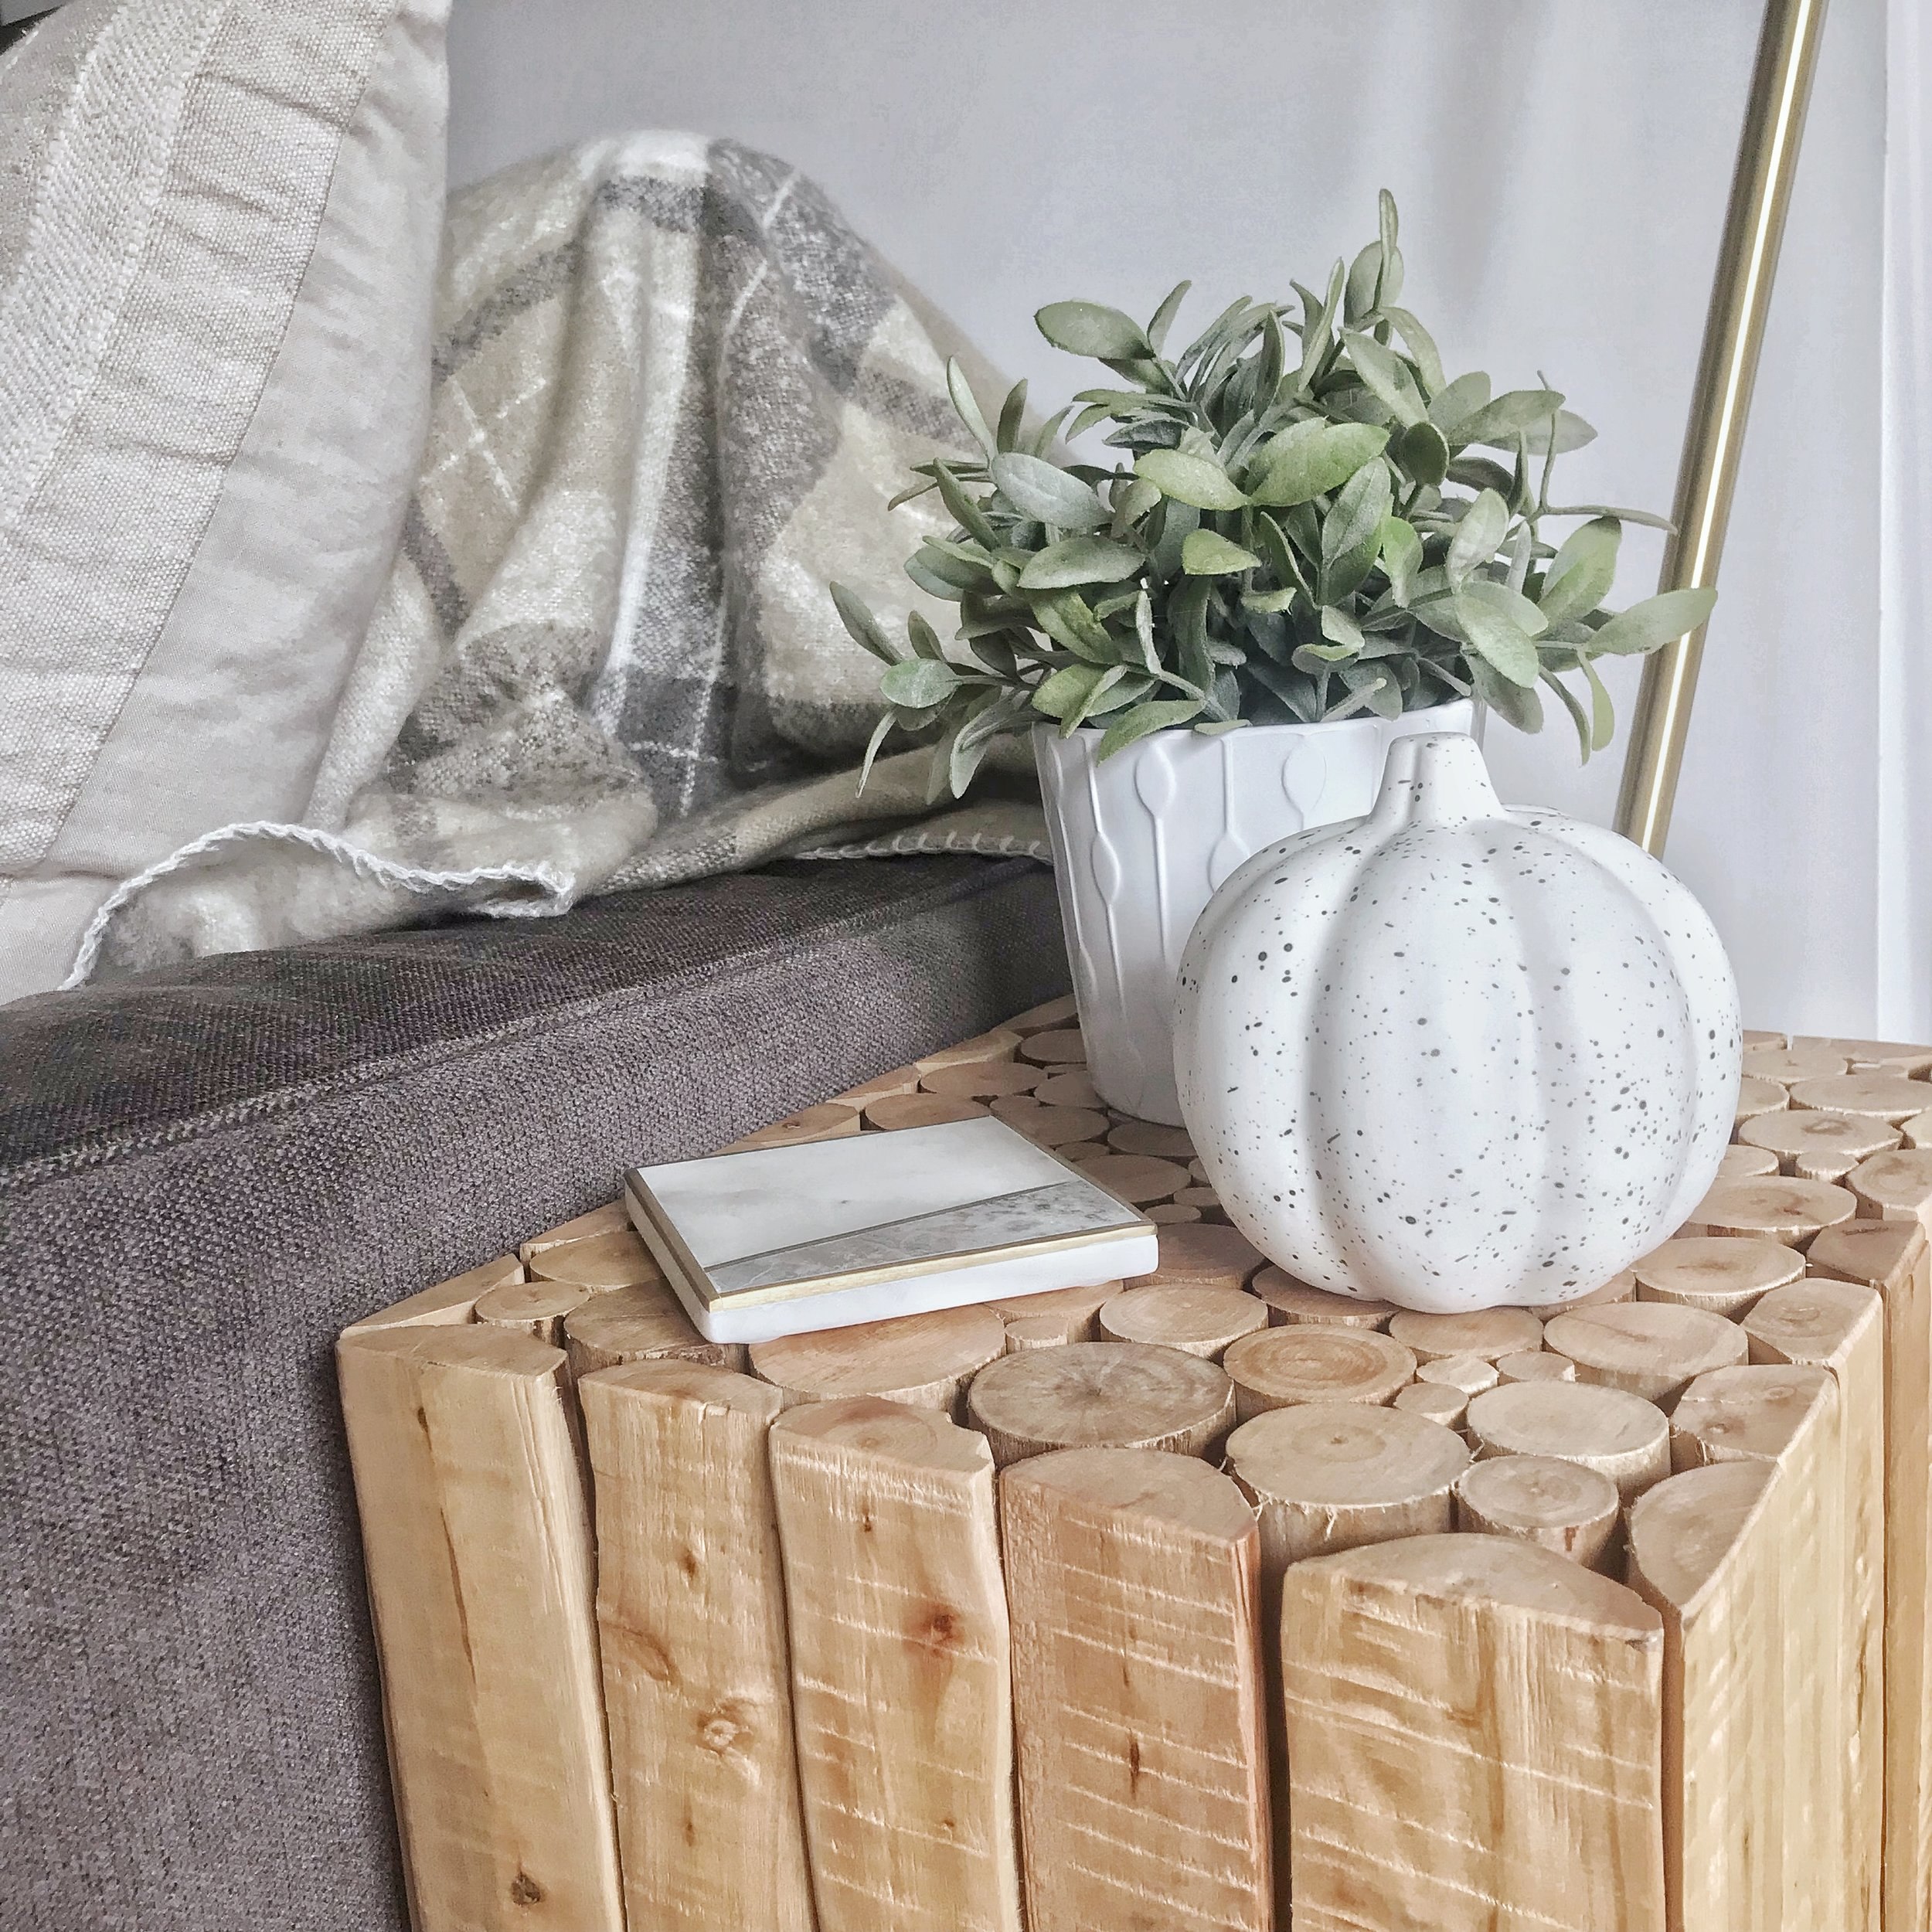 3 Ways to Bring Fall Into Your Home — The Life She Wanders